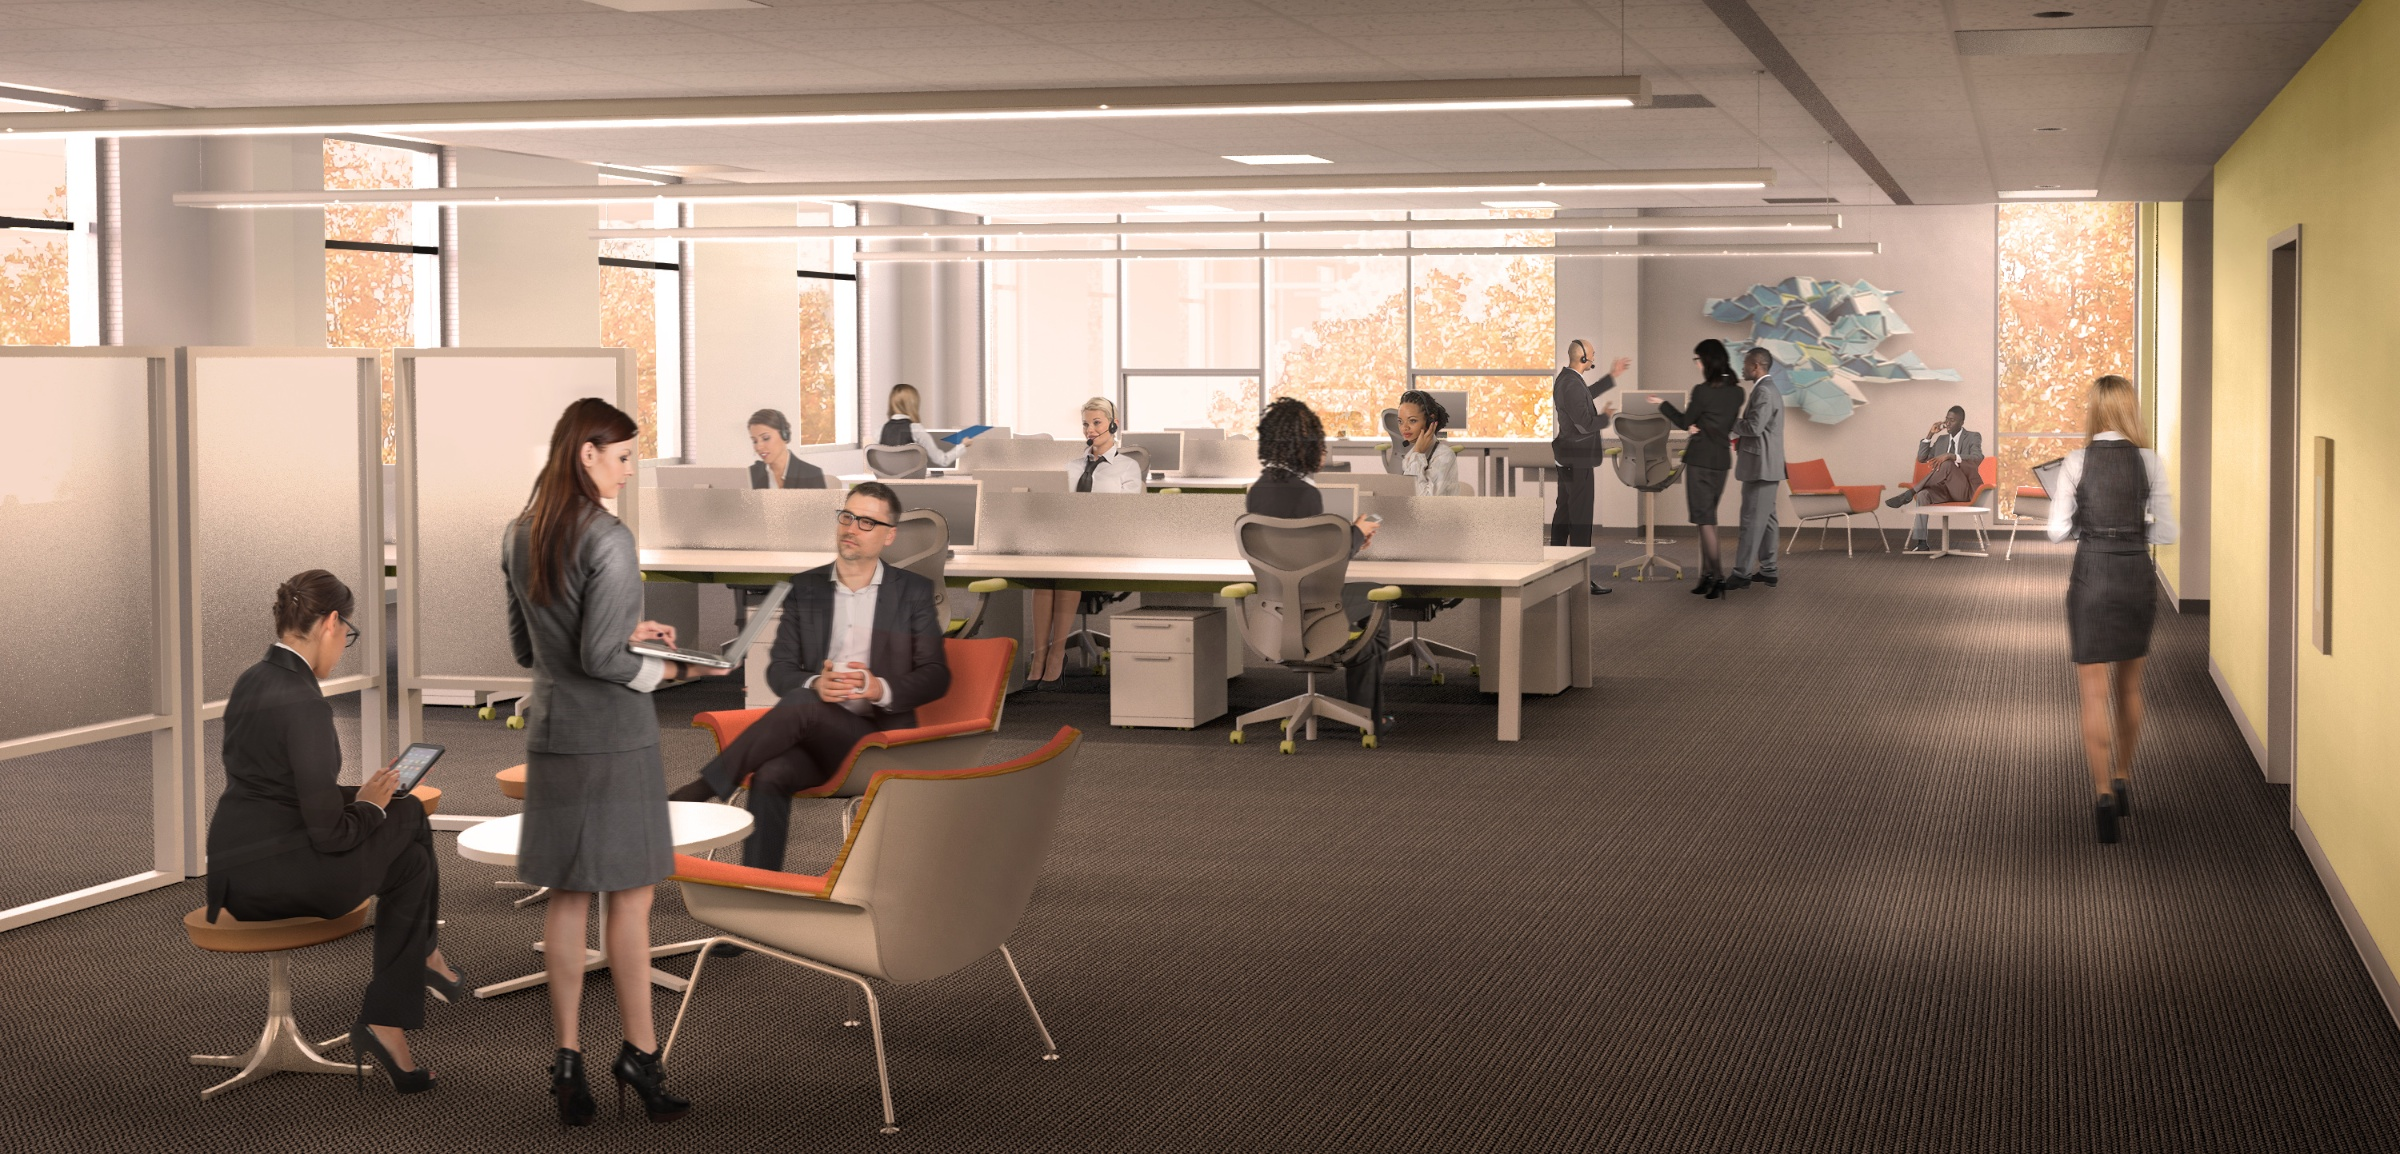 1208_62_NWCU_rendering_office1.jpg